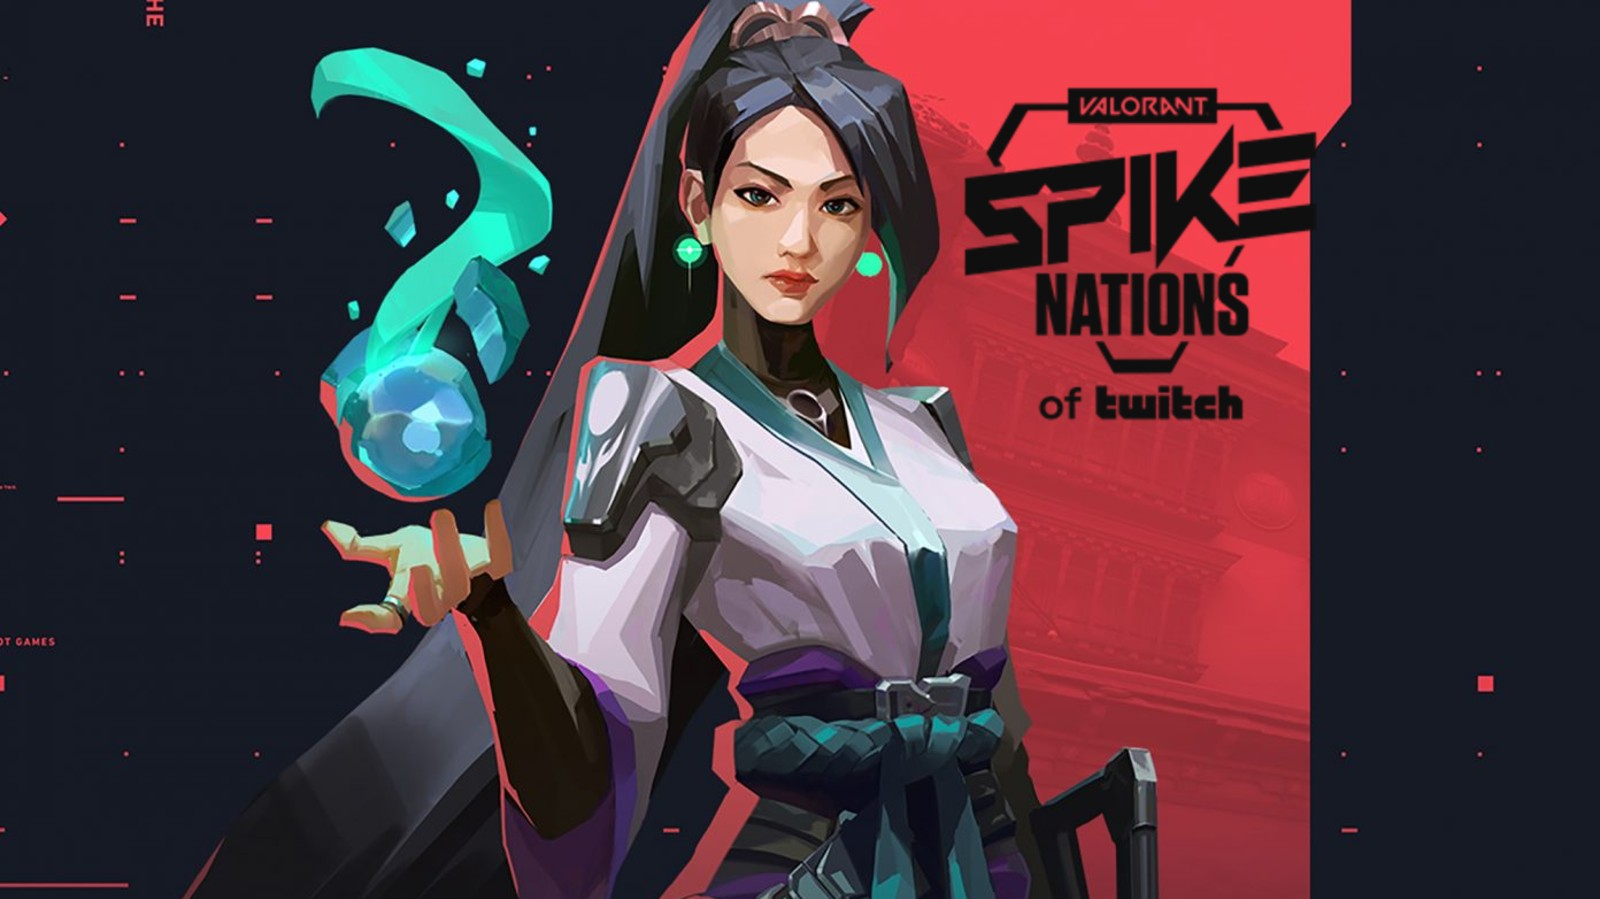 spike-nations-of-twitch